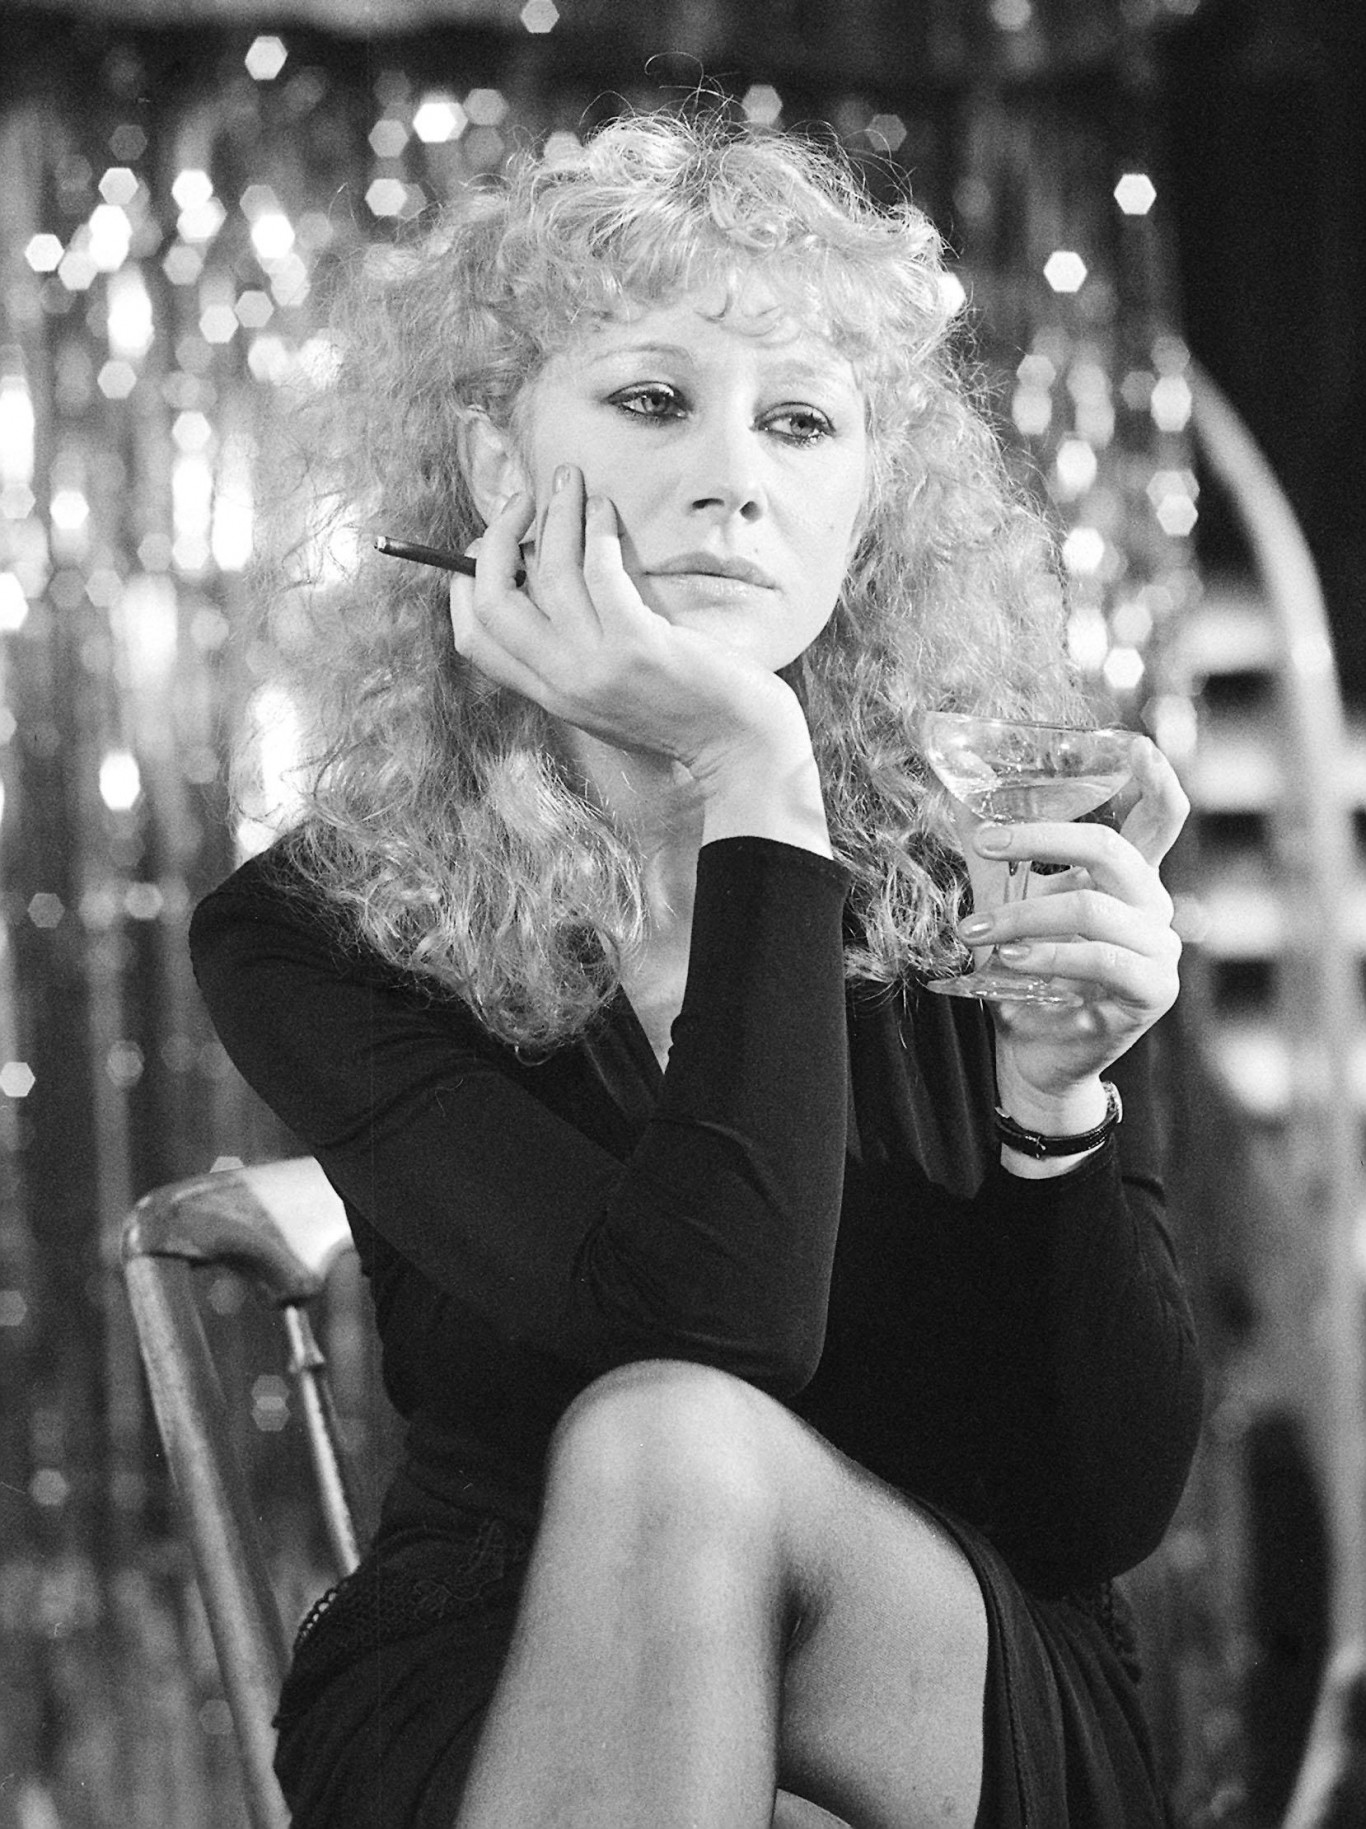 Helen Mirren looking glam on set of 1979 film Hussy